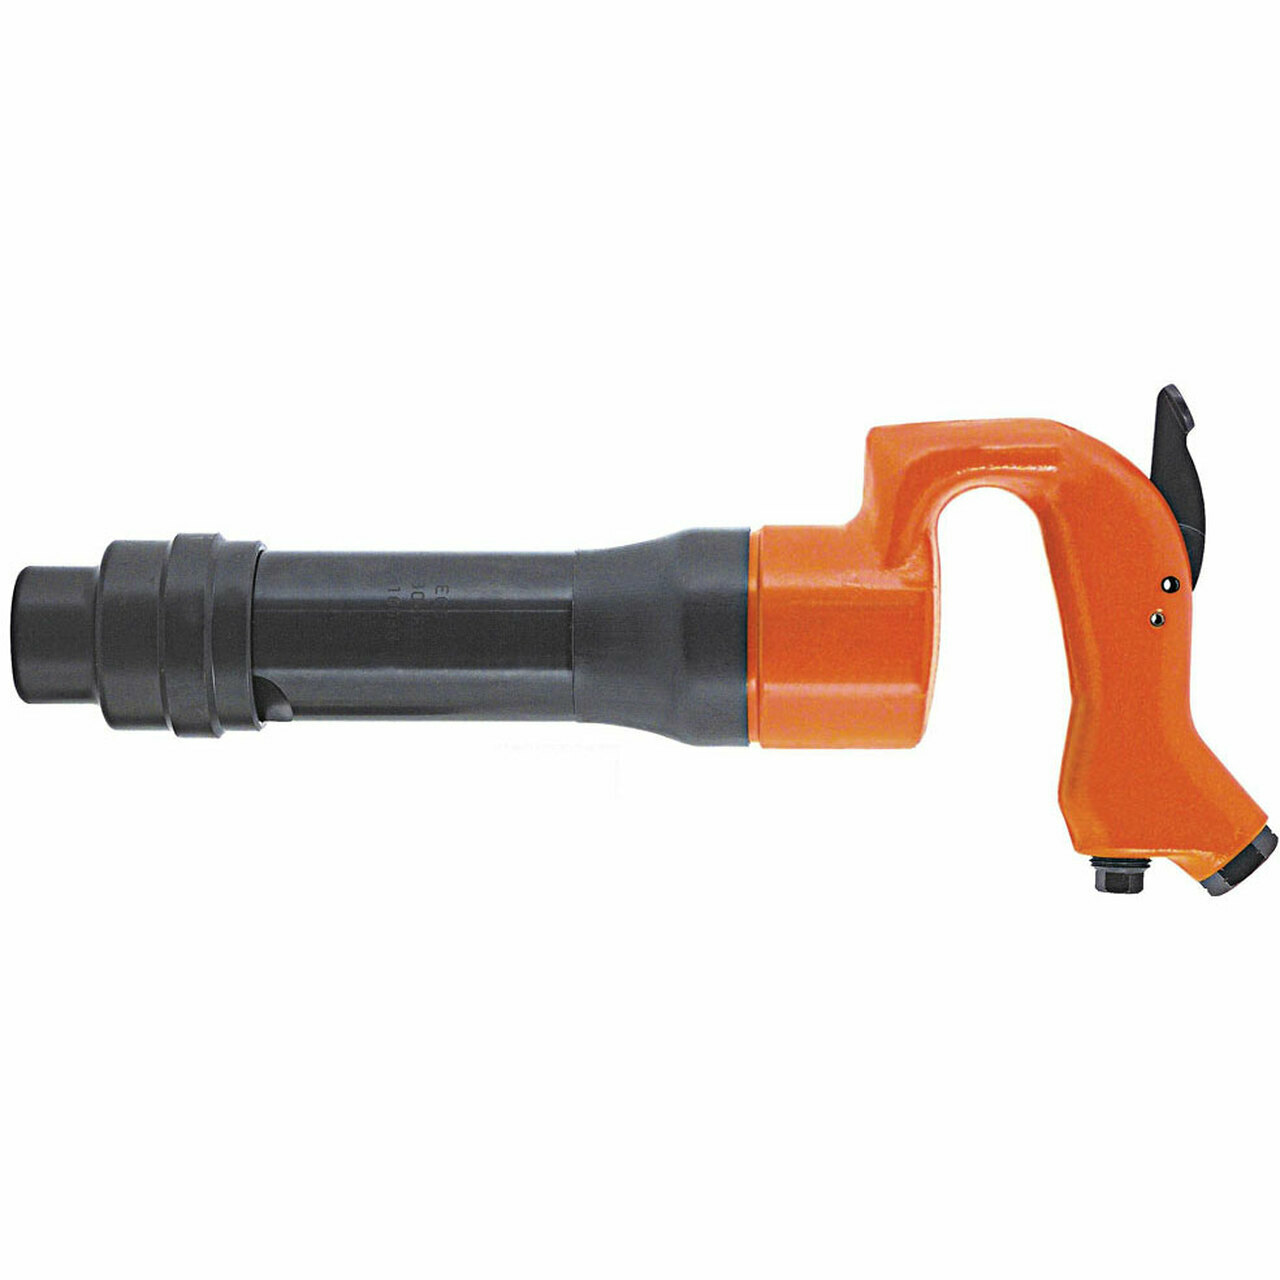 Cleco Chipping Hammers